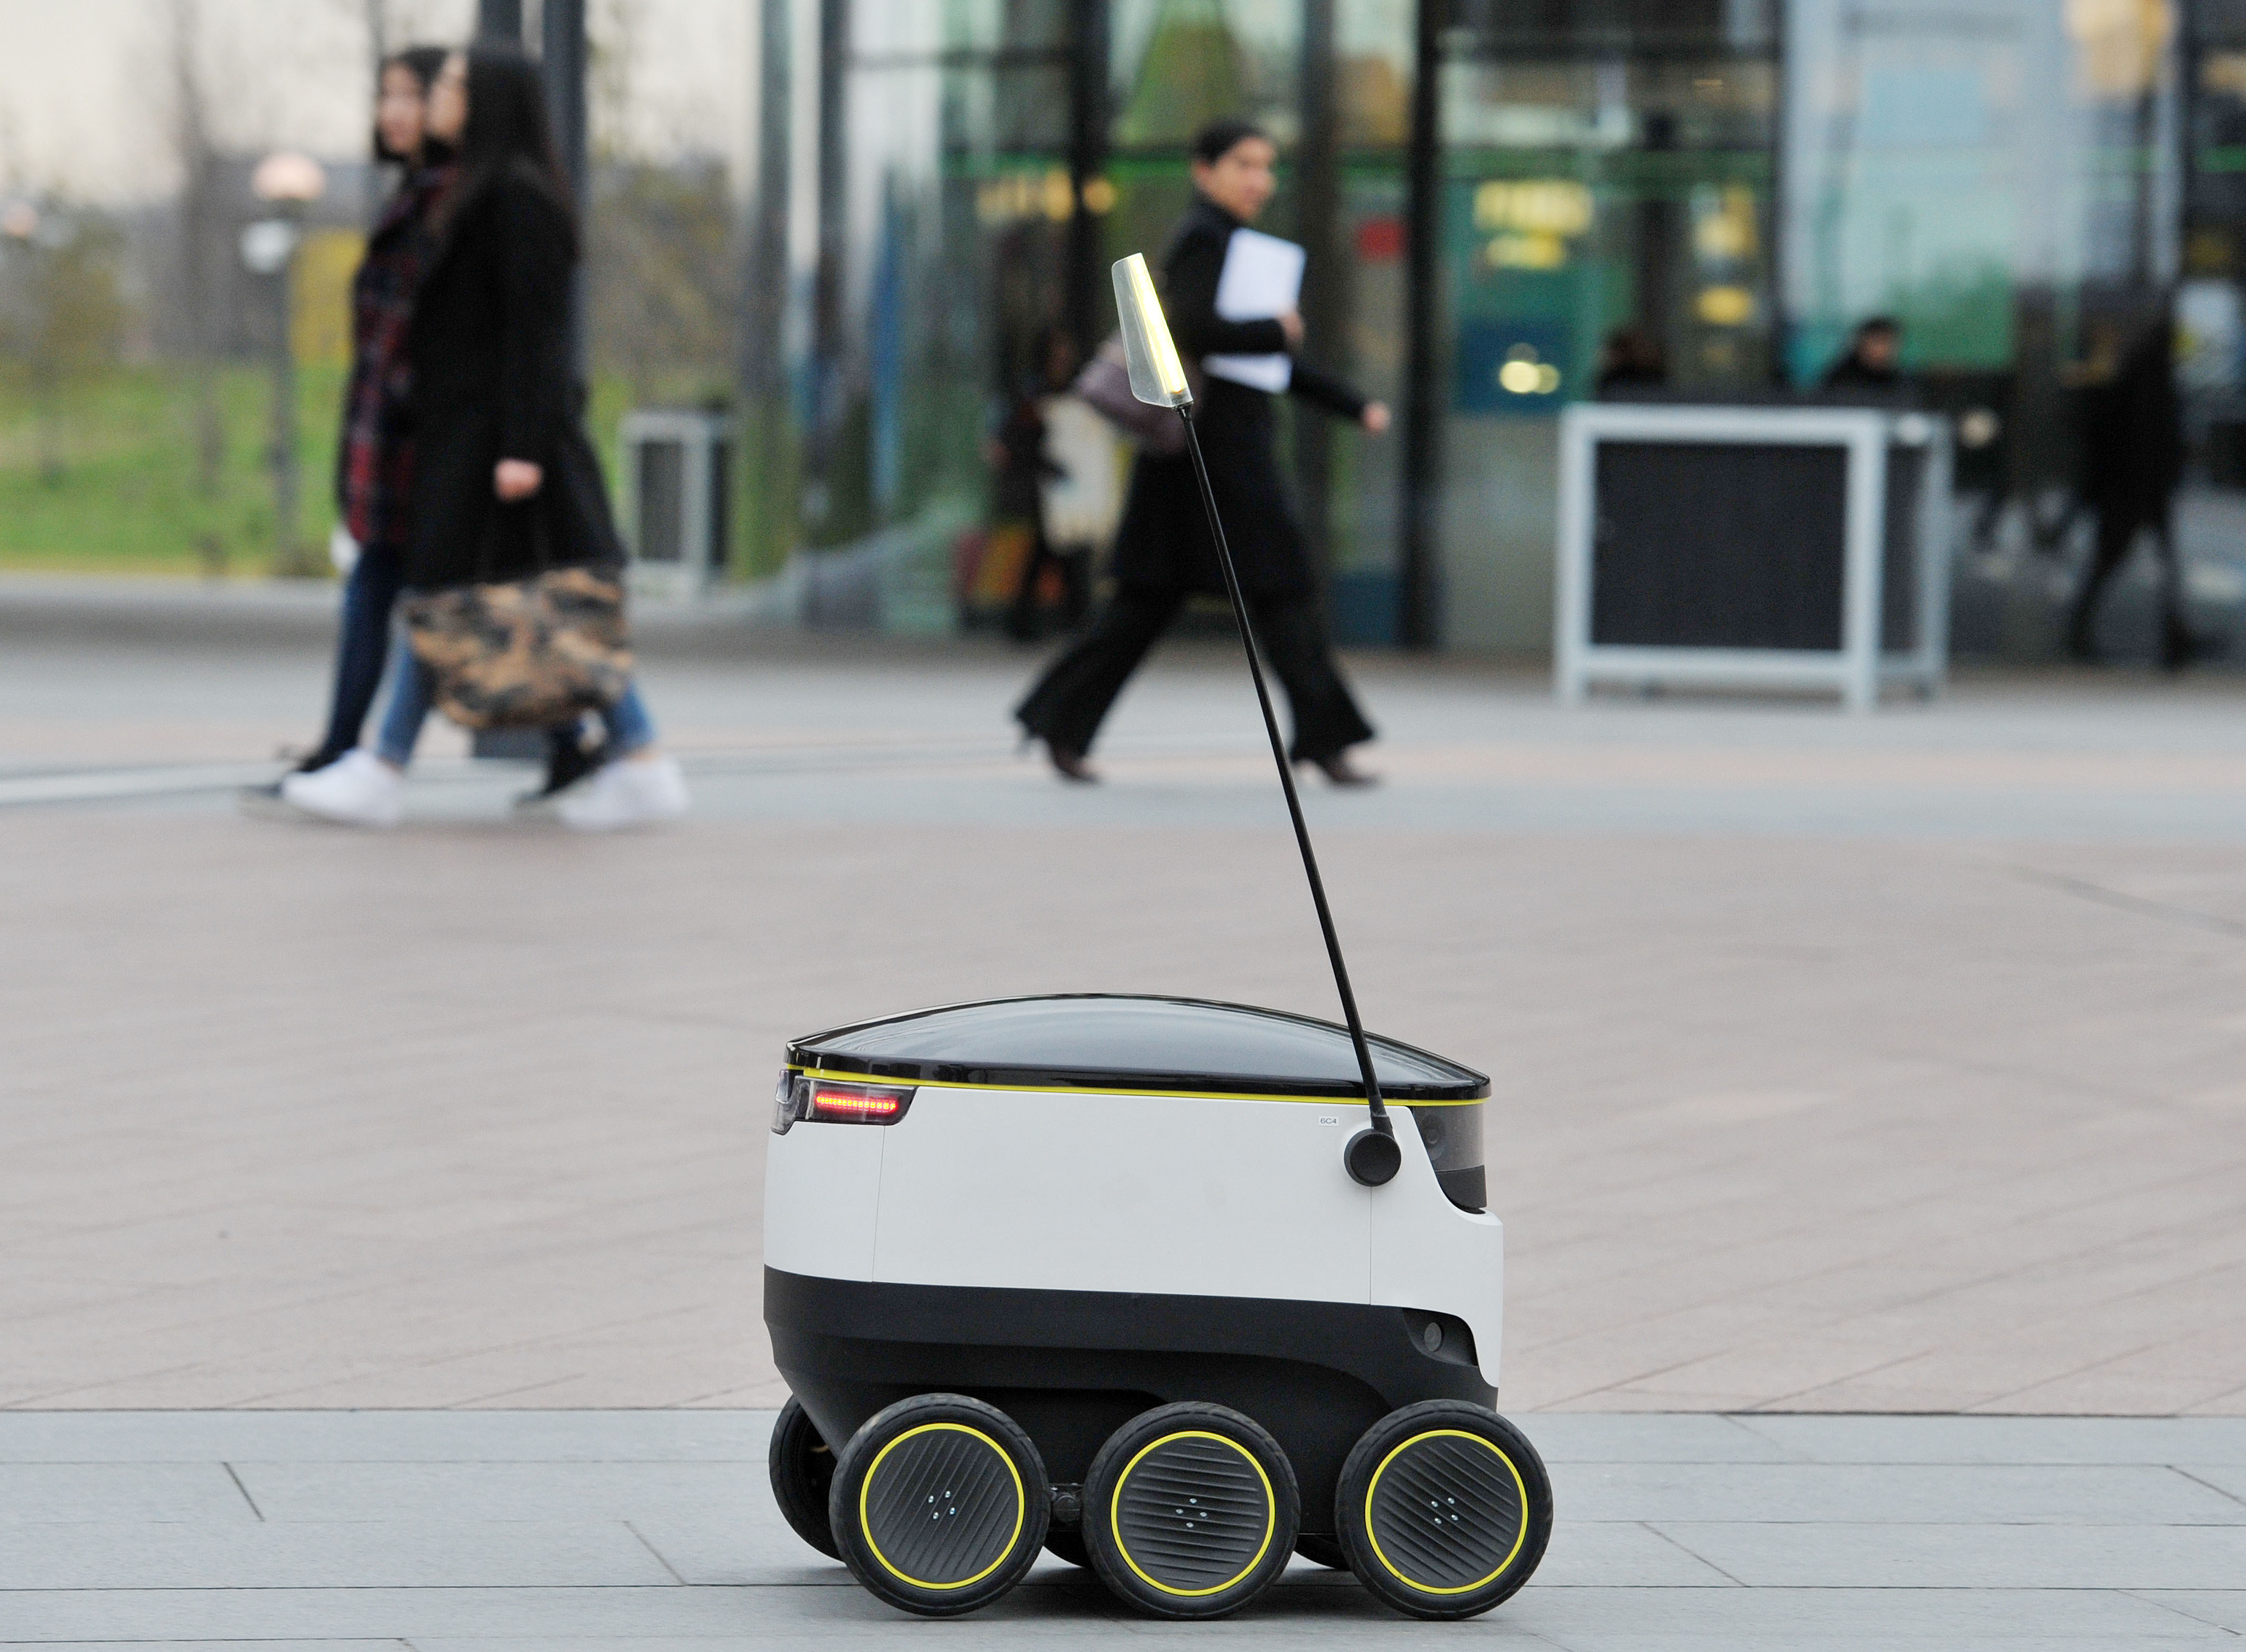 Starship Technologies self-driving delivery robot. A Starship Technologies' self-driving delivery robot during the launch of its UK trials, at their office on the Greenwich Peninsula, south London on March 10, 2016.